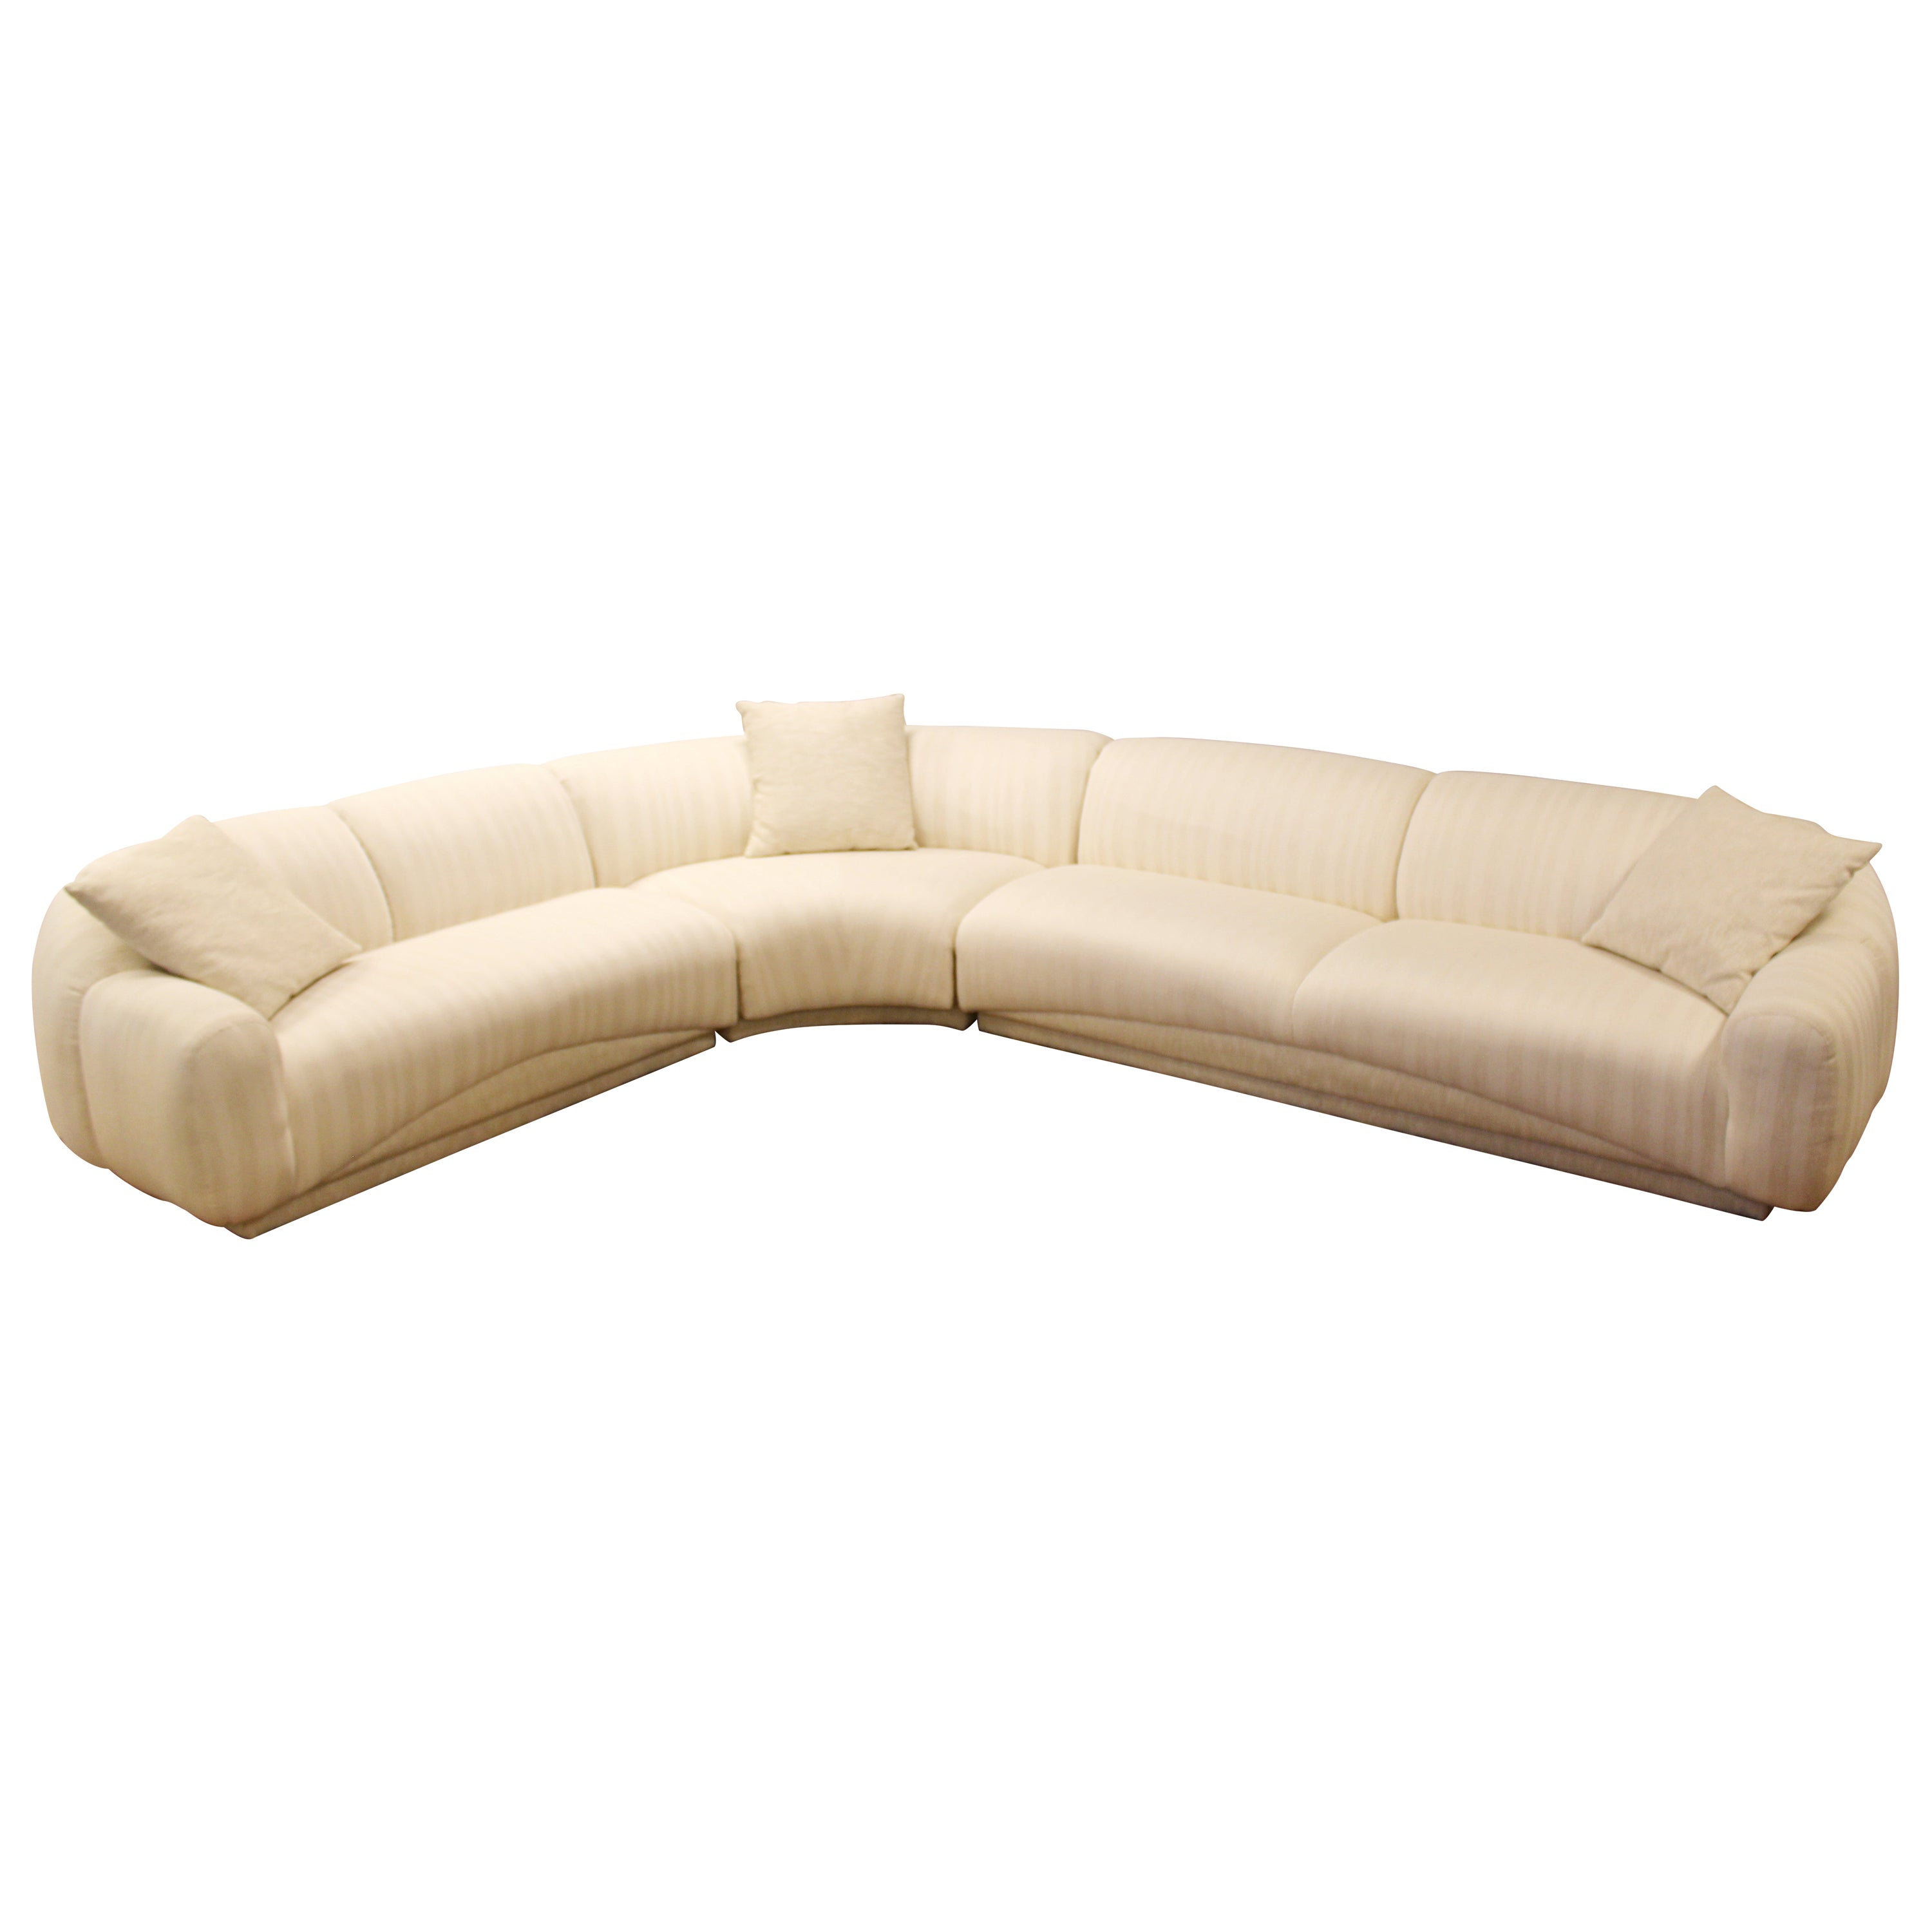 Contemporary Modern Sculptural Serpentine Sofa Sectional Kagan Style 1980s